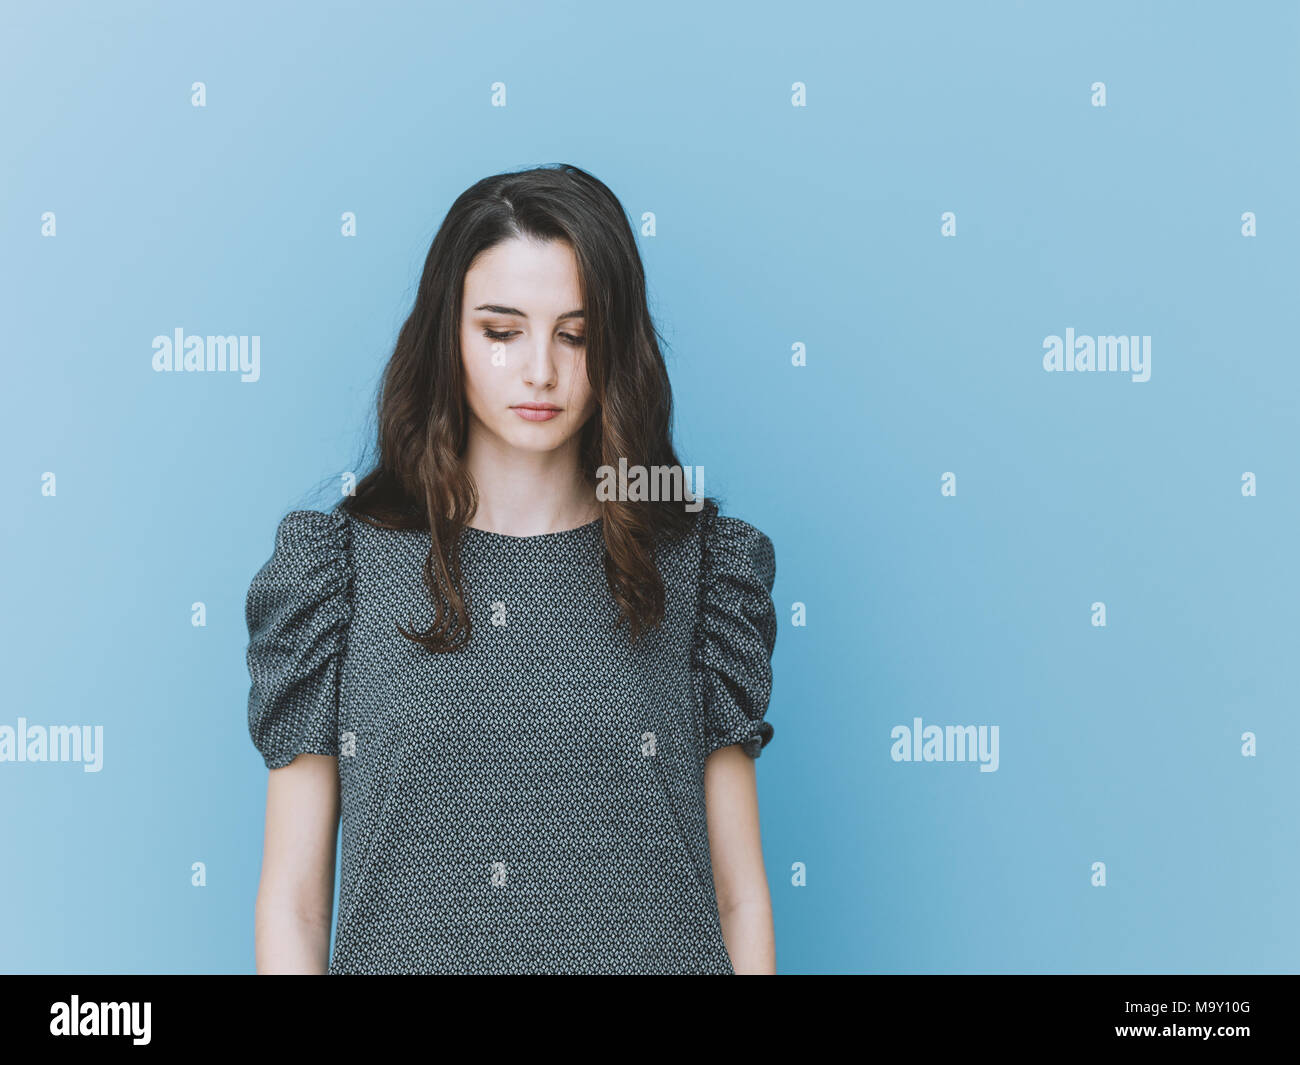 db417f1e3bd8 Elegant stylish girl looking down, she is sad and pensive Stock ...